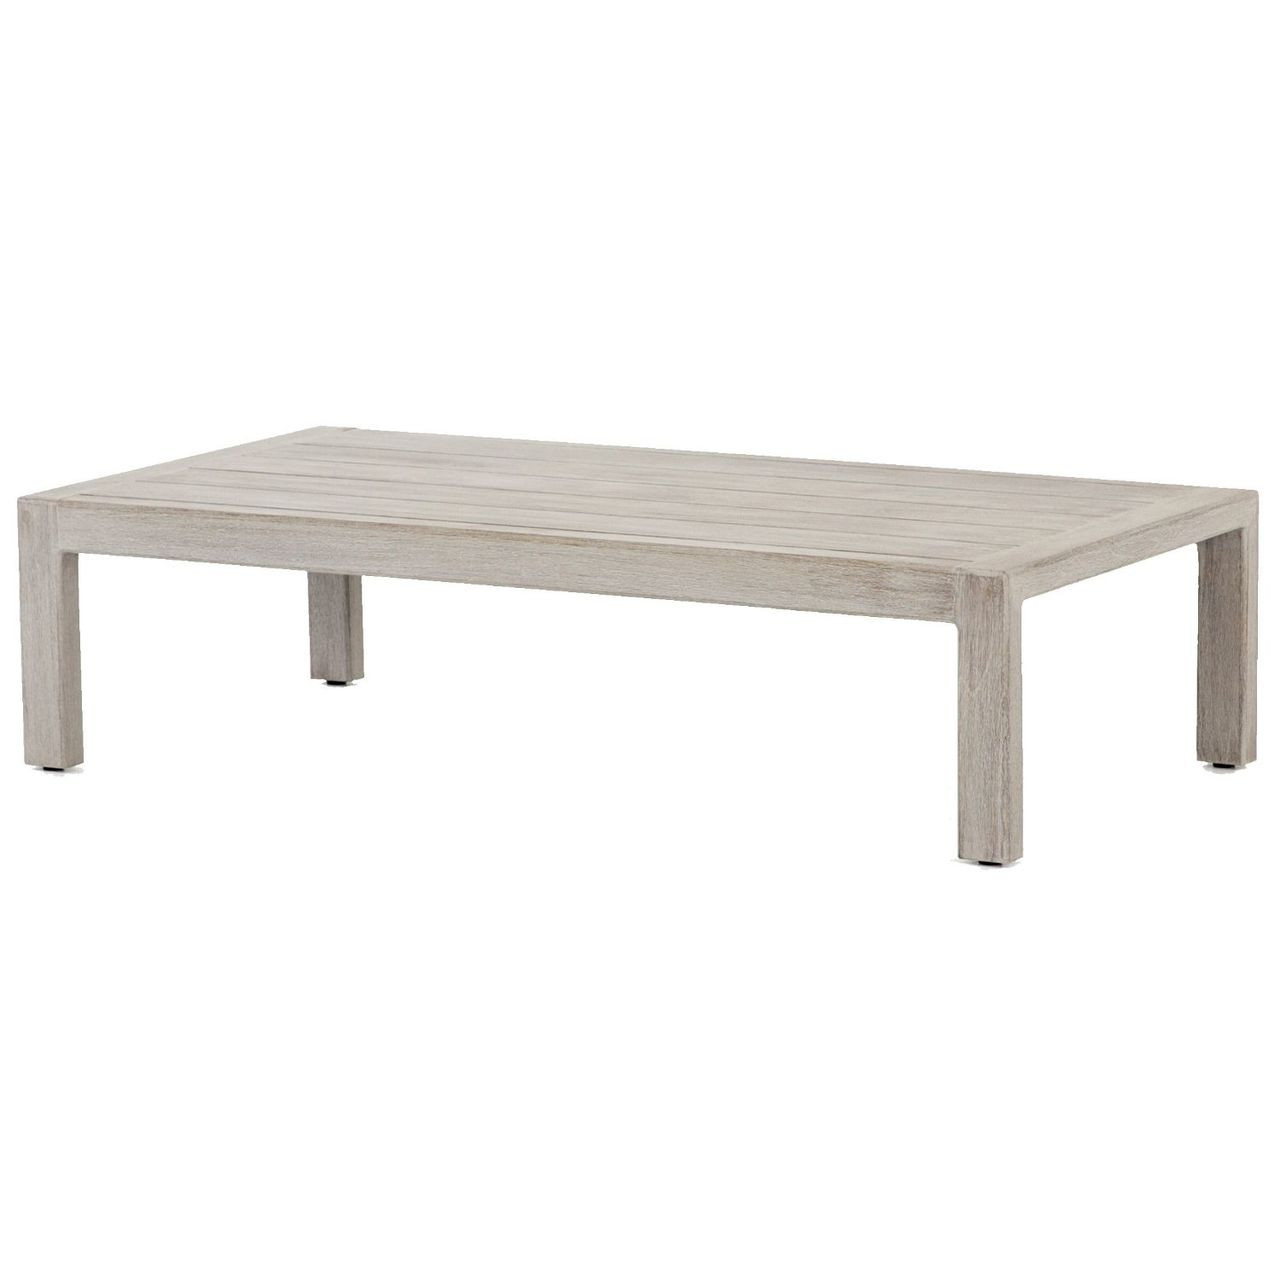 Stupendous Sonoma Grey Teak Outdoor Coffee Table 47 Caraccident5 Cool Chair Designs And Ideas Caraccident5Info